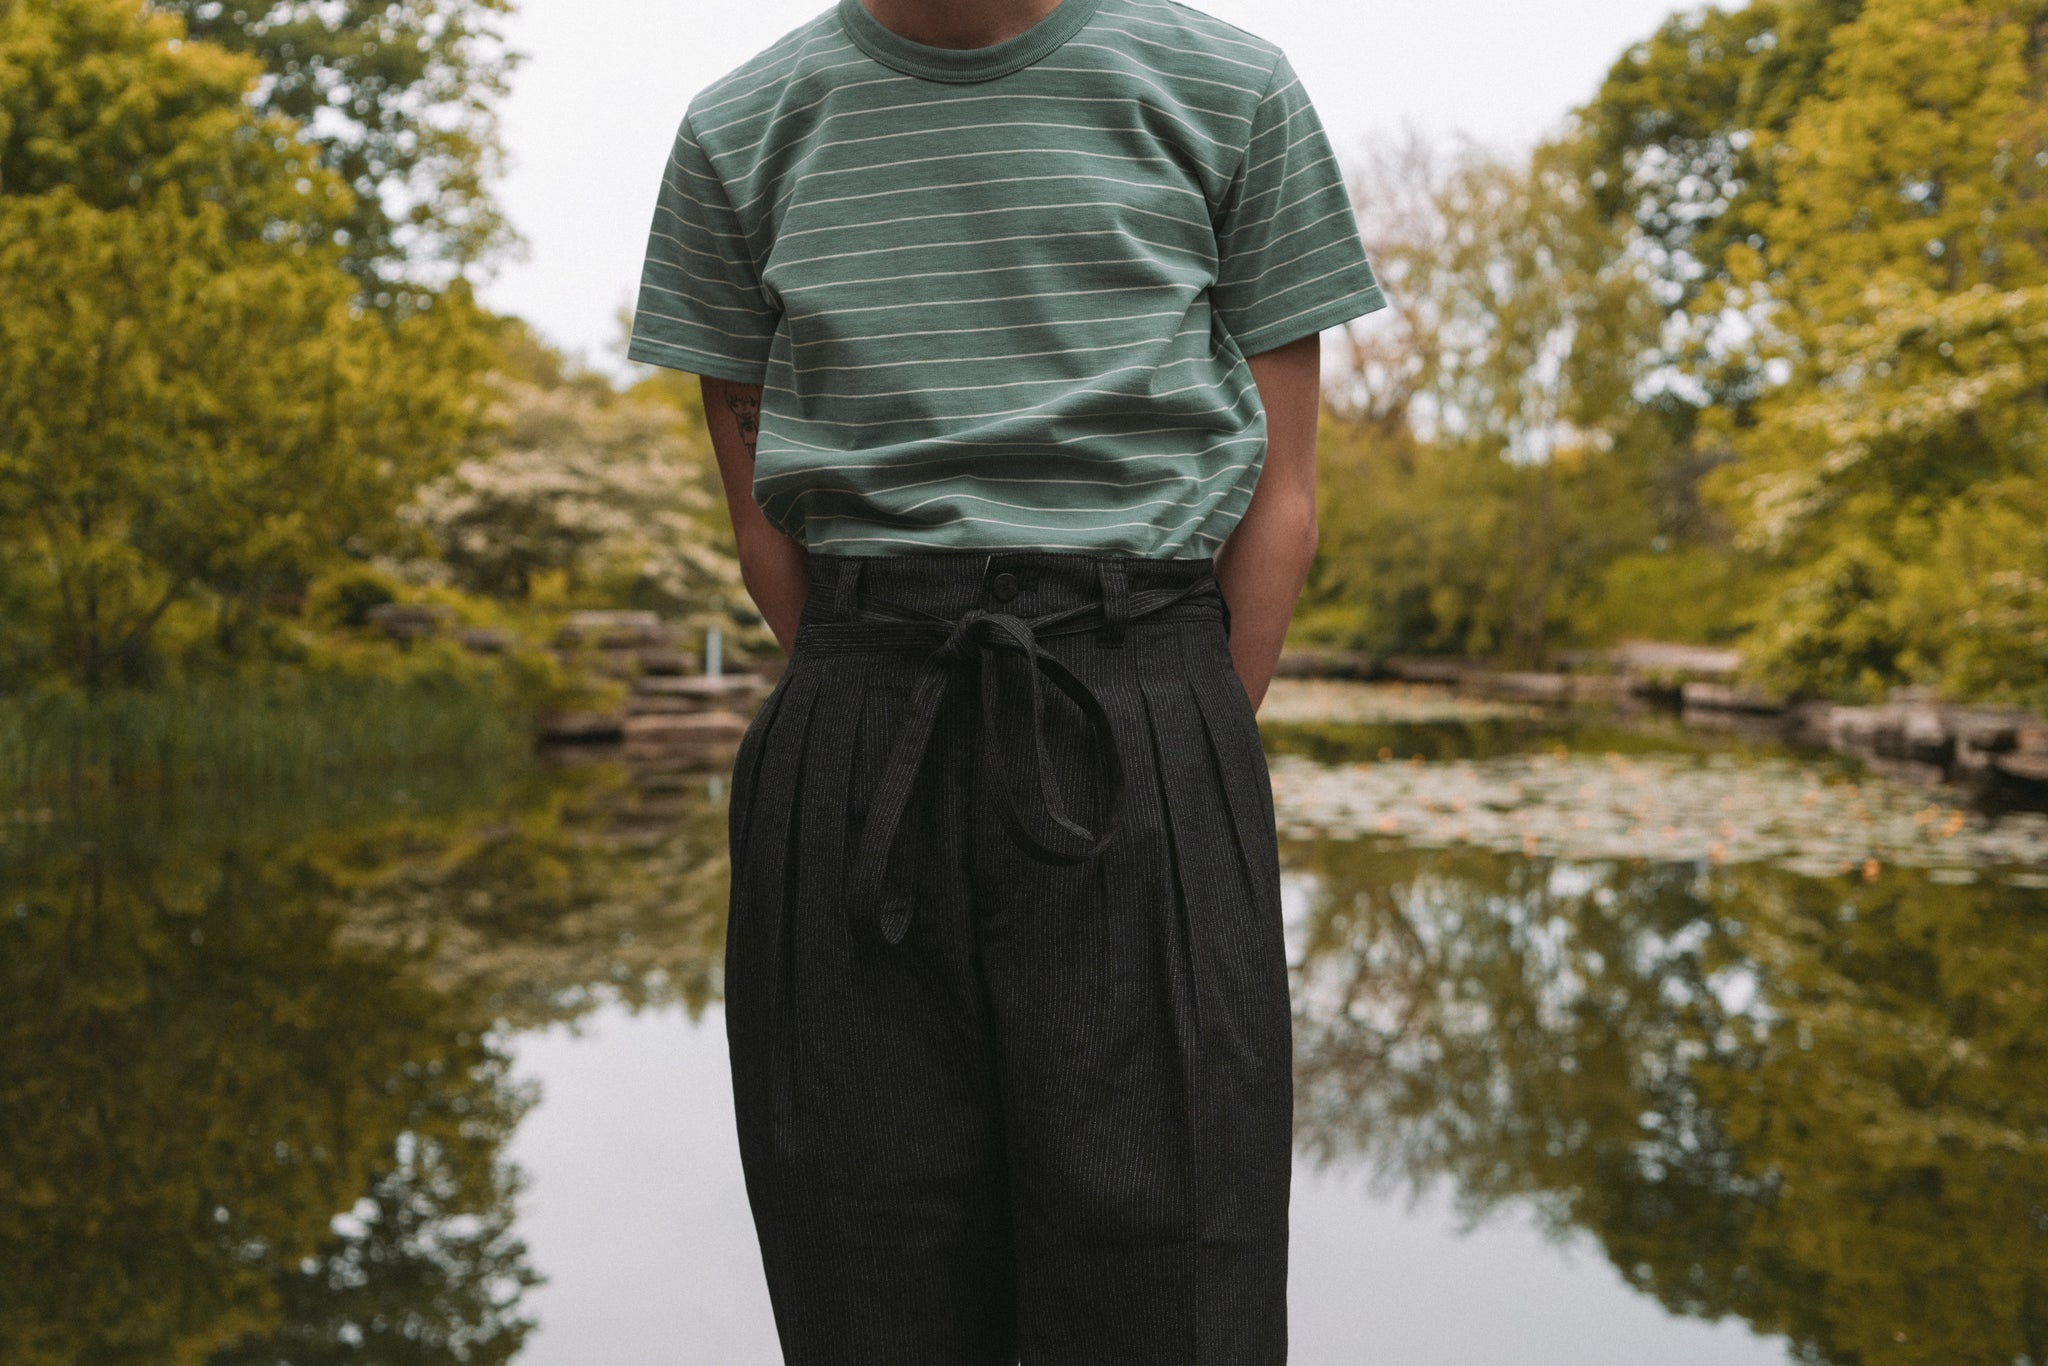 Visvim SS'17 at Notre - Hakama Pants in Pinstripe Black & Mid Border Tee S/S in Green